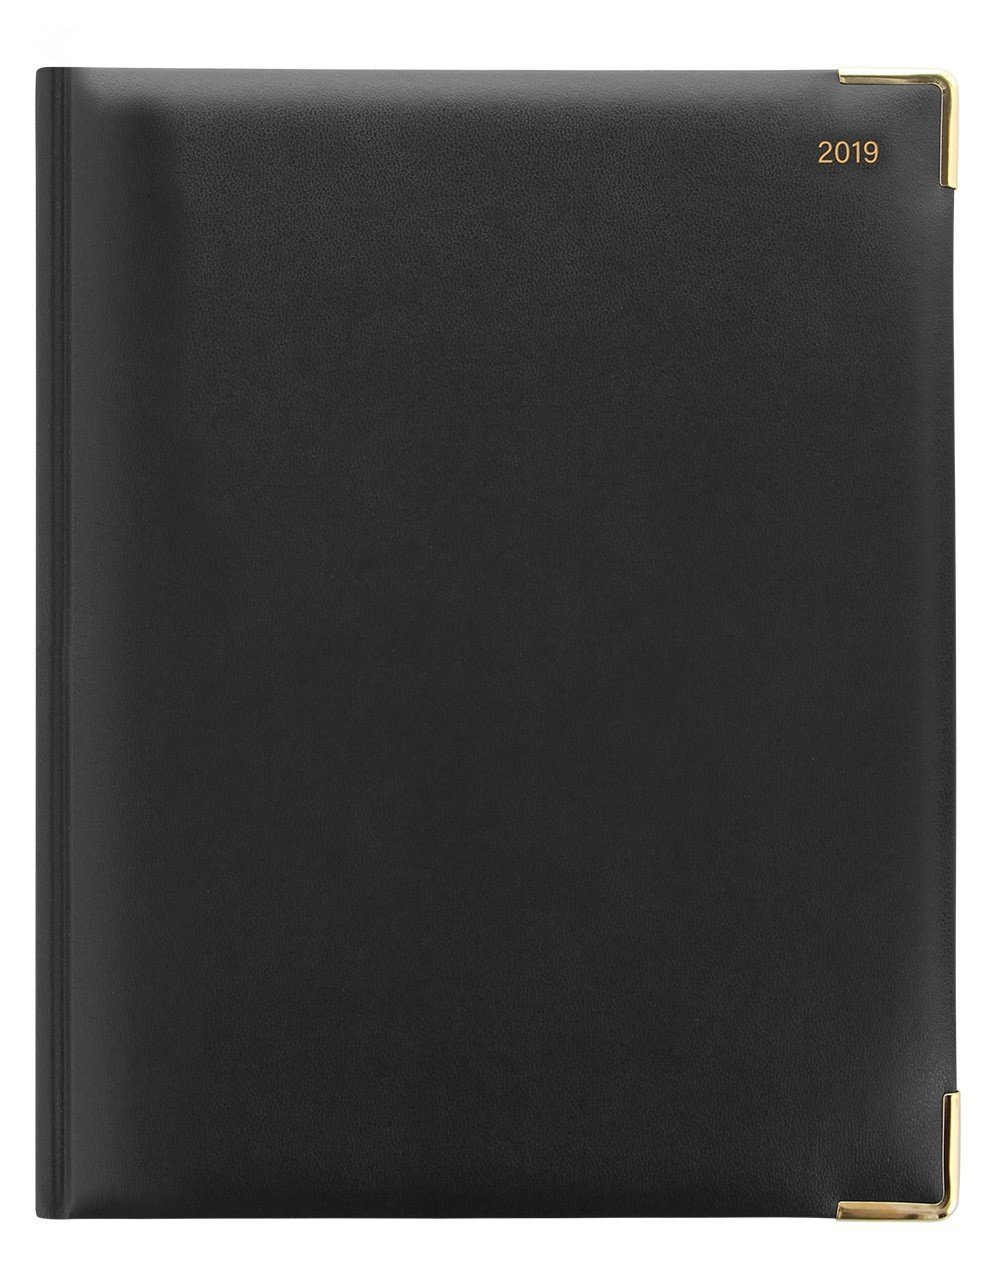 Letts of London Classic Desk 11Y 2019 Month to View - Quarto Size (Y Size) Calendar - Black by Letts of London